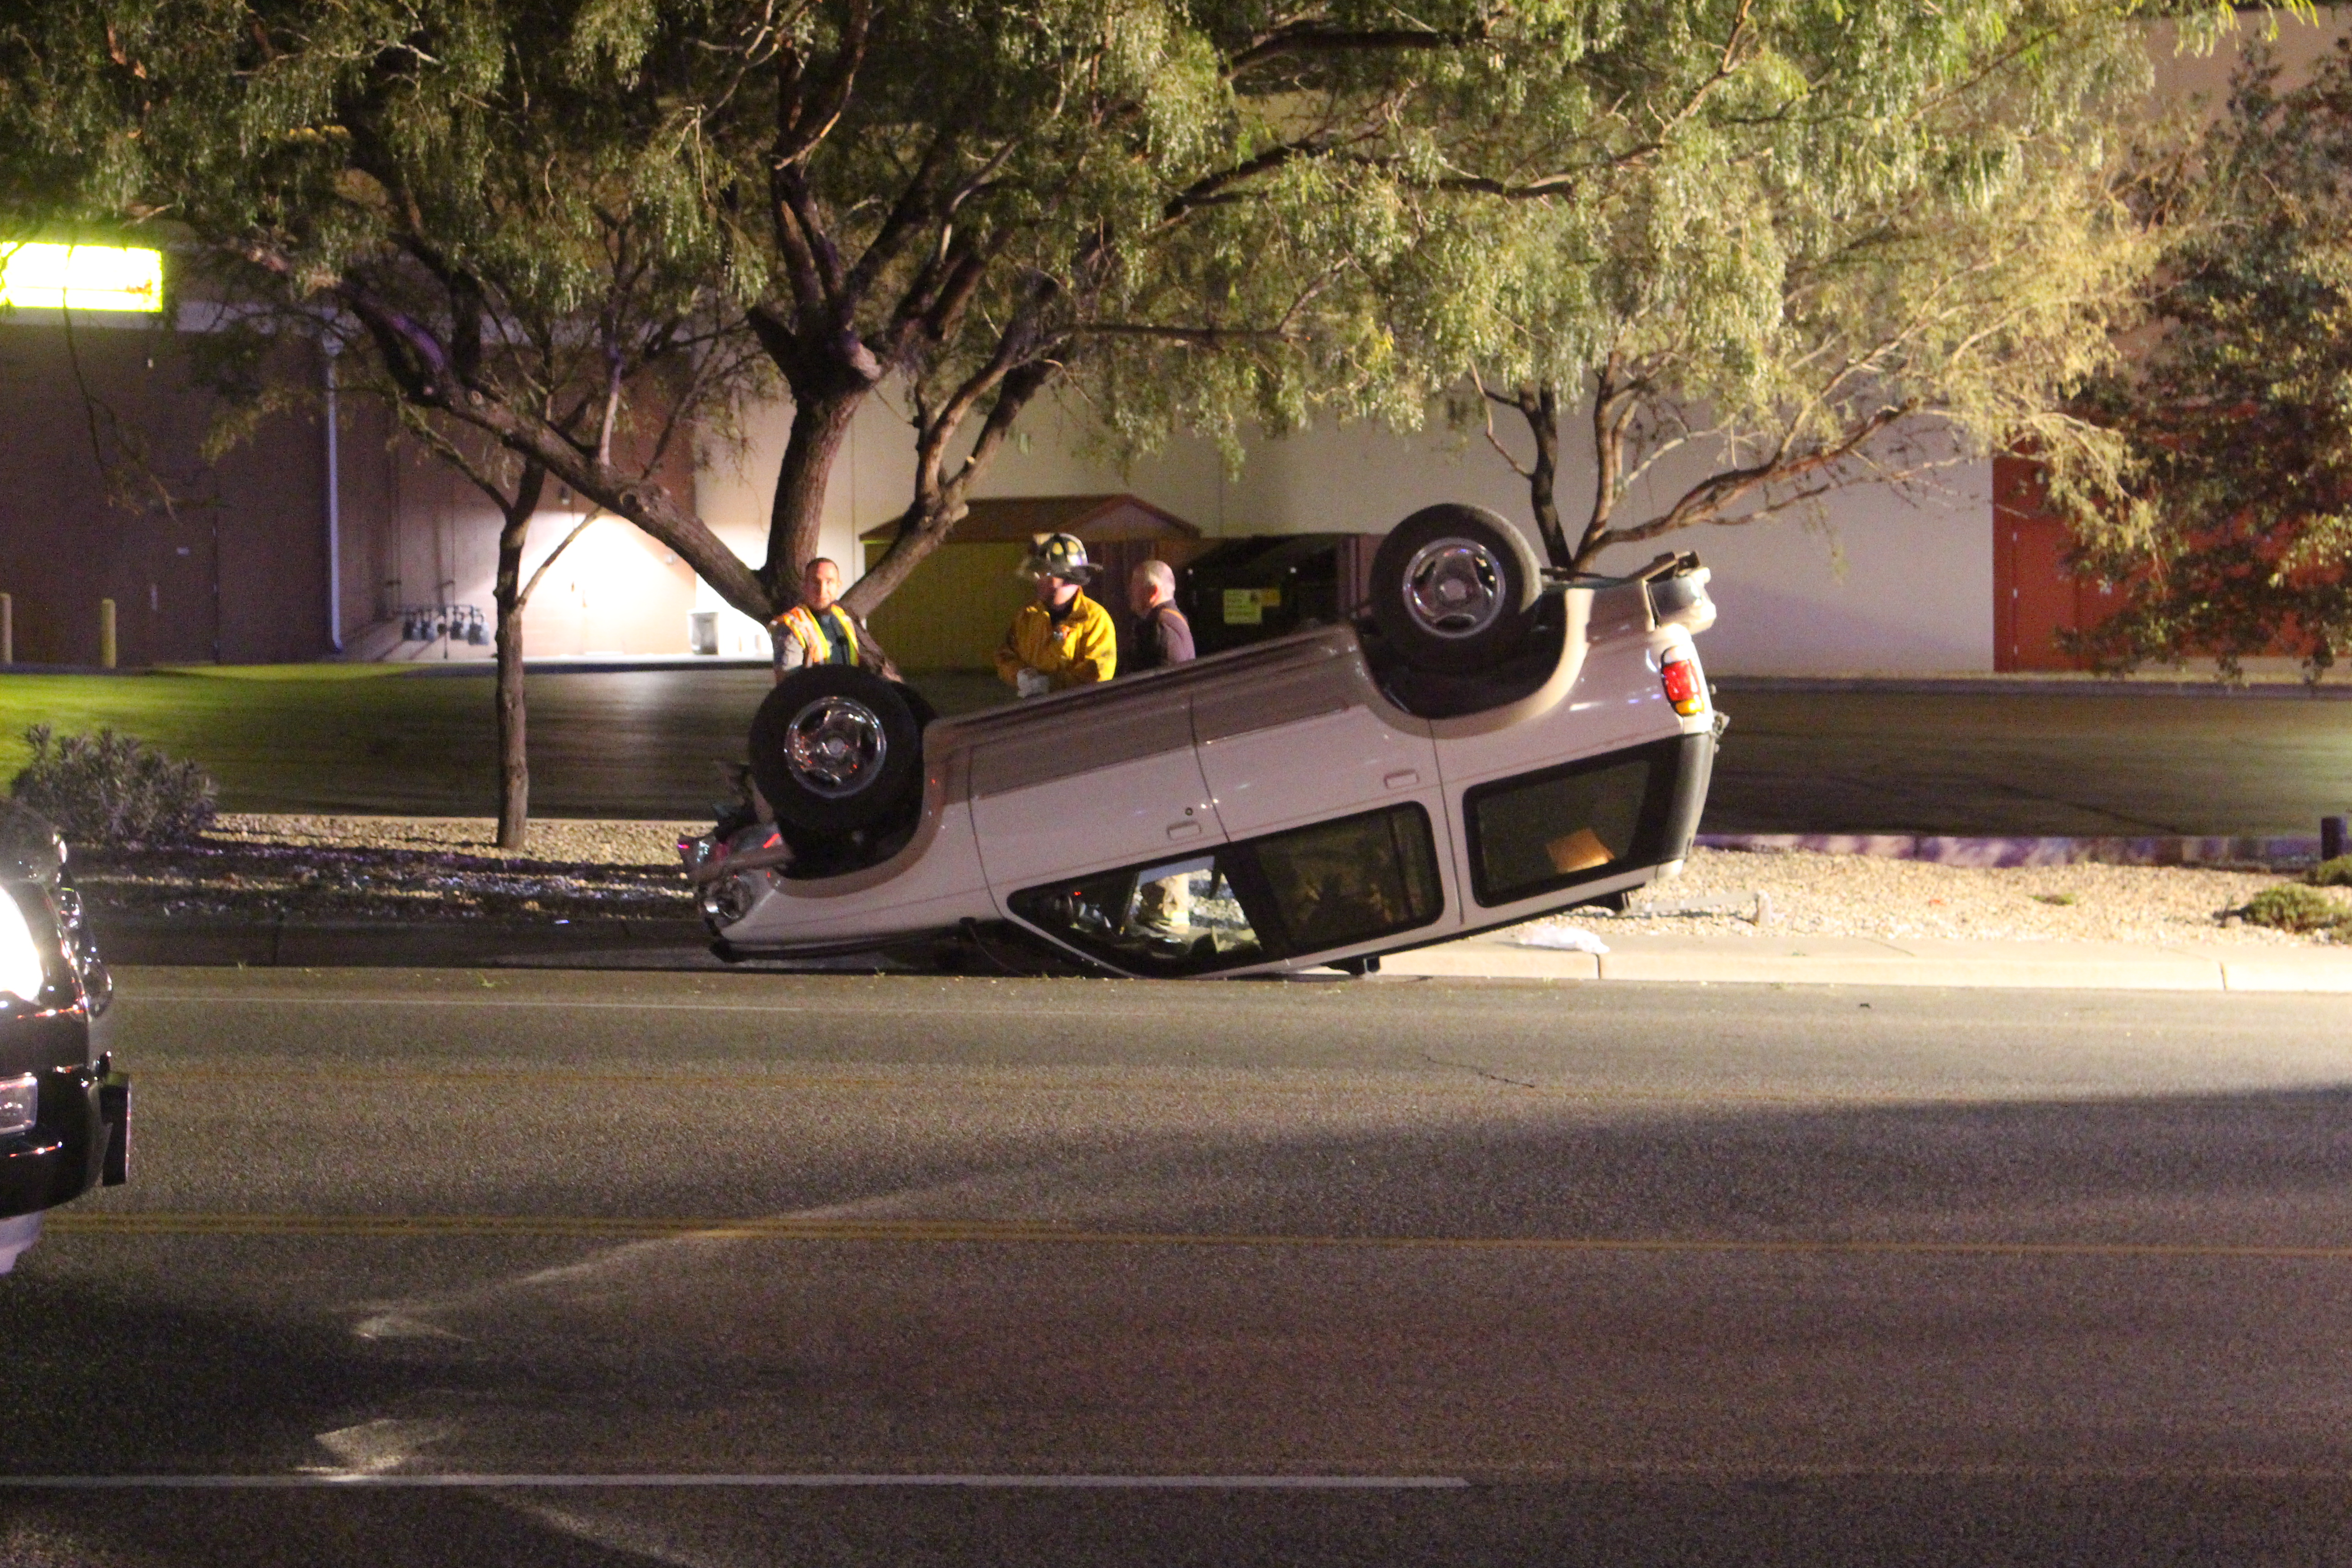 A Ford Explorer sits upside down after its driver slammed into a tree, Washington City, Utah, Dec. 11, 2016   Photo by Joseph Witham, St. George News